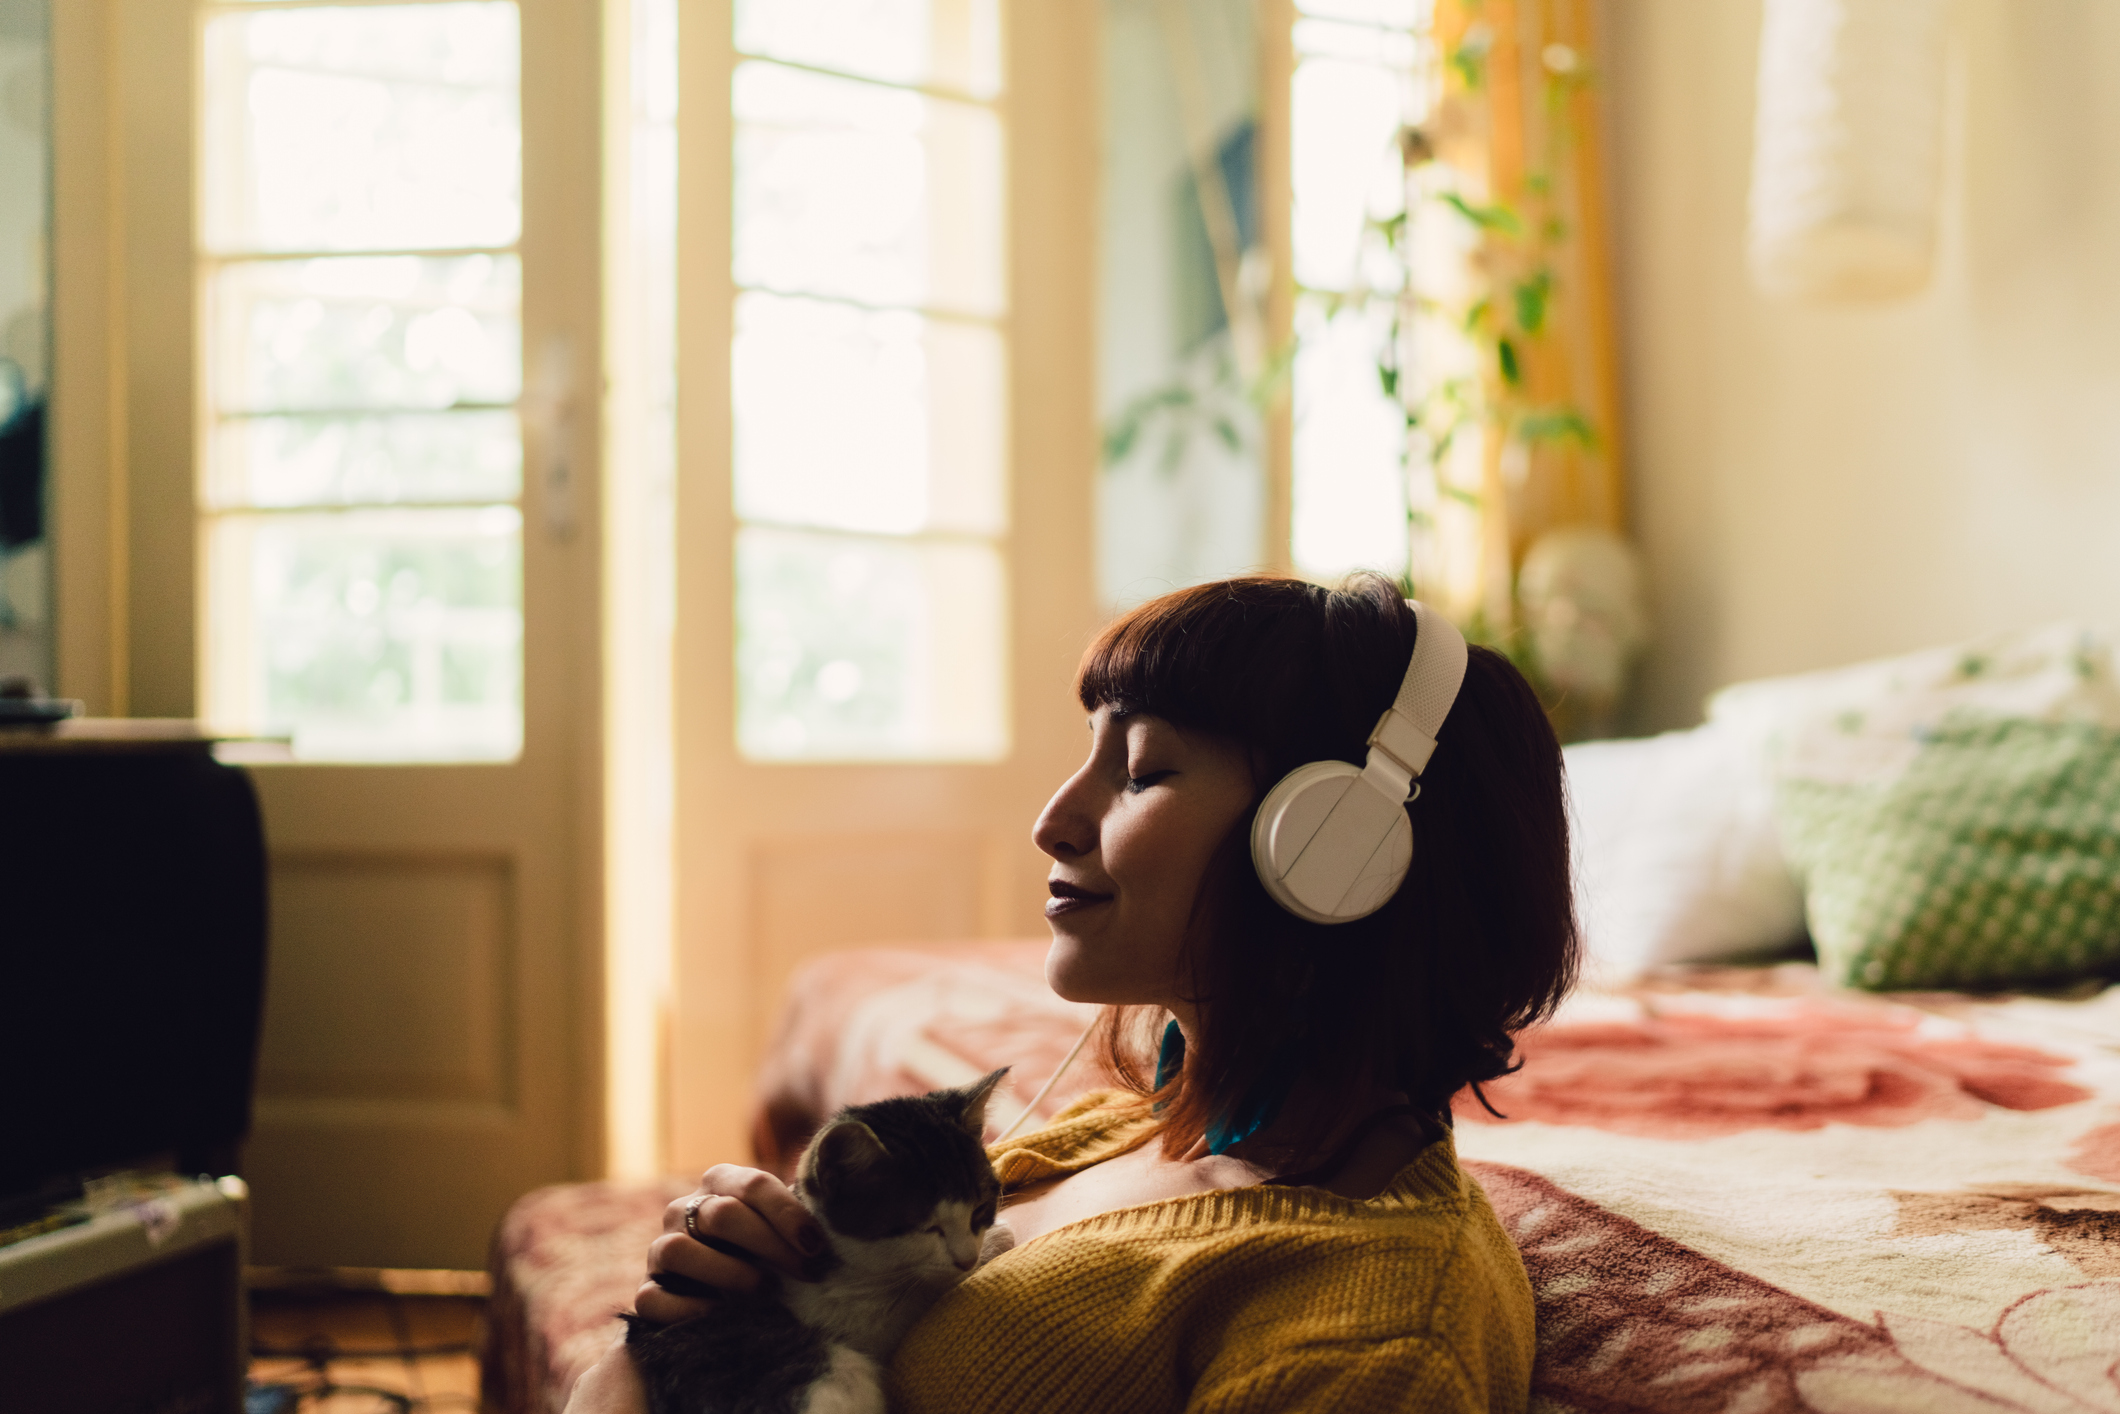 woman with headphones on holding a cat